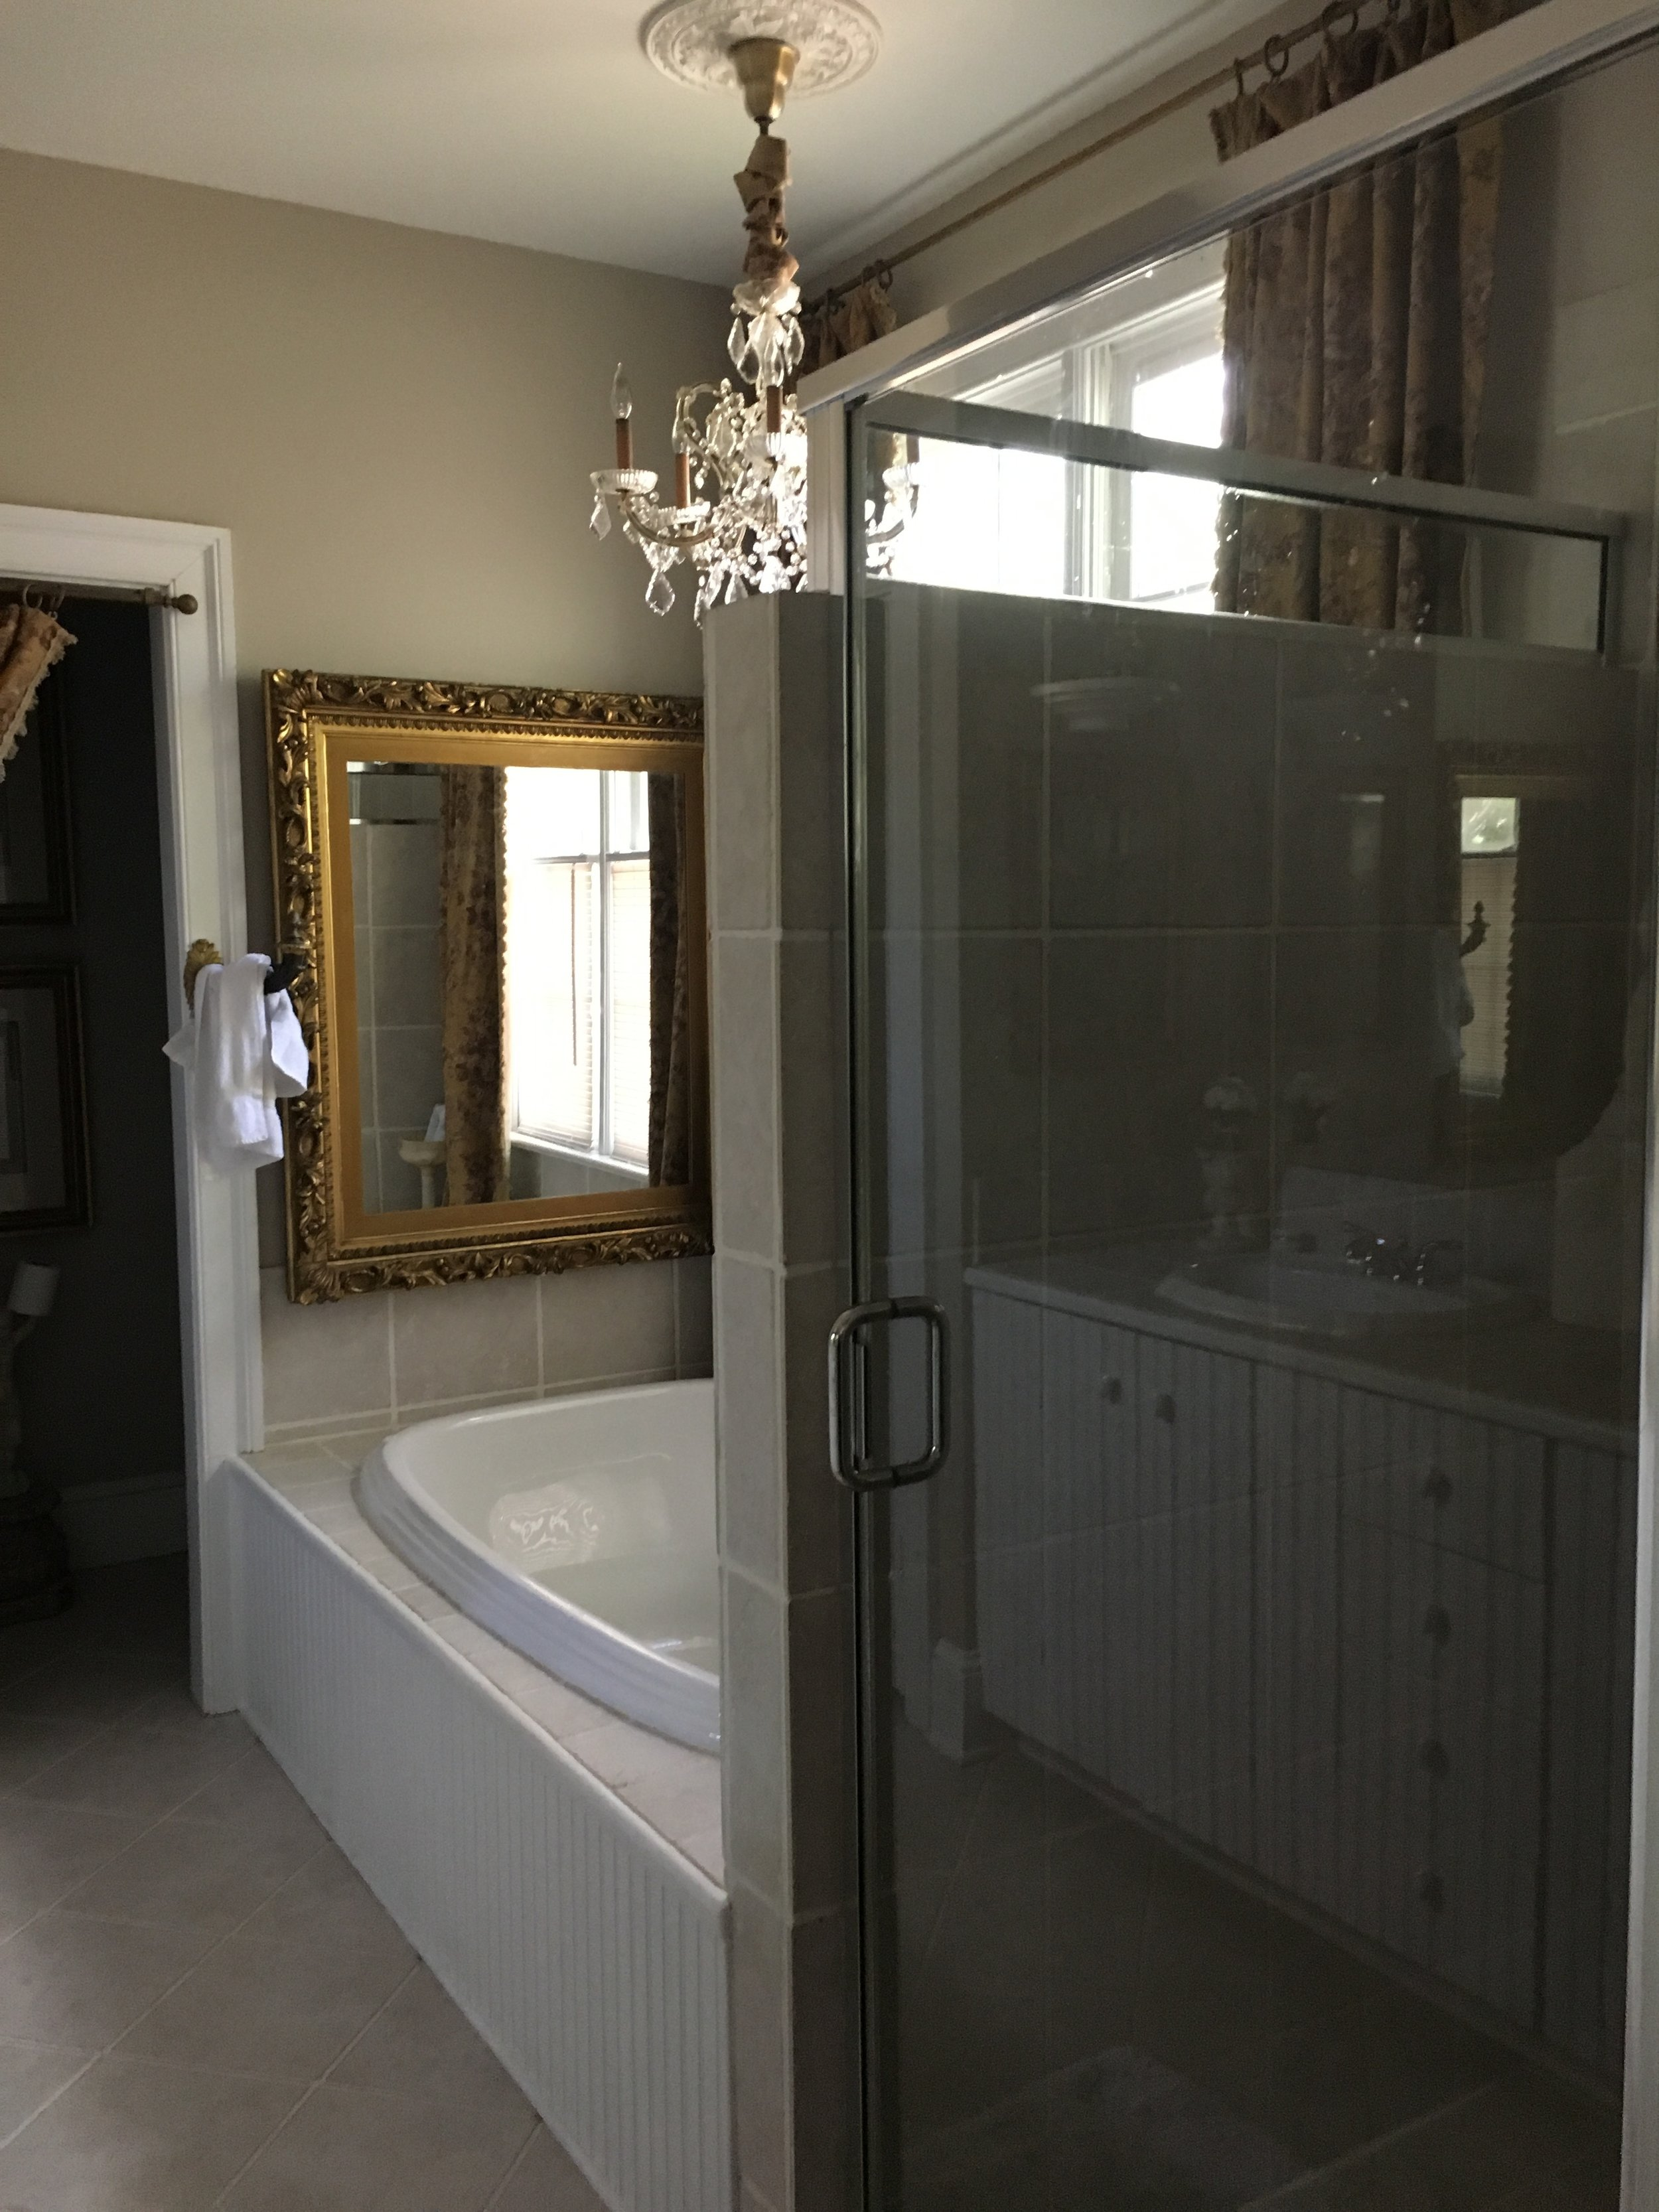 I so wish I would have taken advantage of this bathtub - it's so big and beautiful!